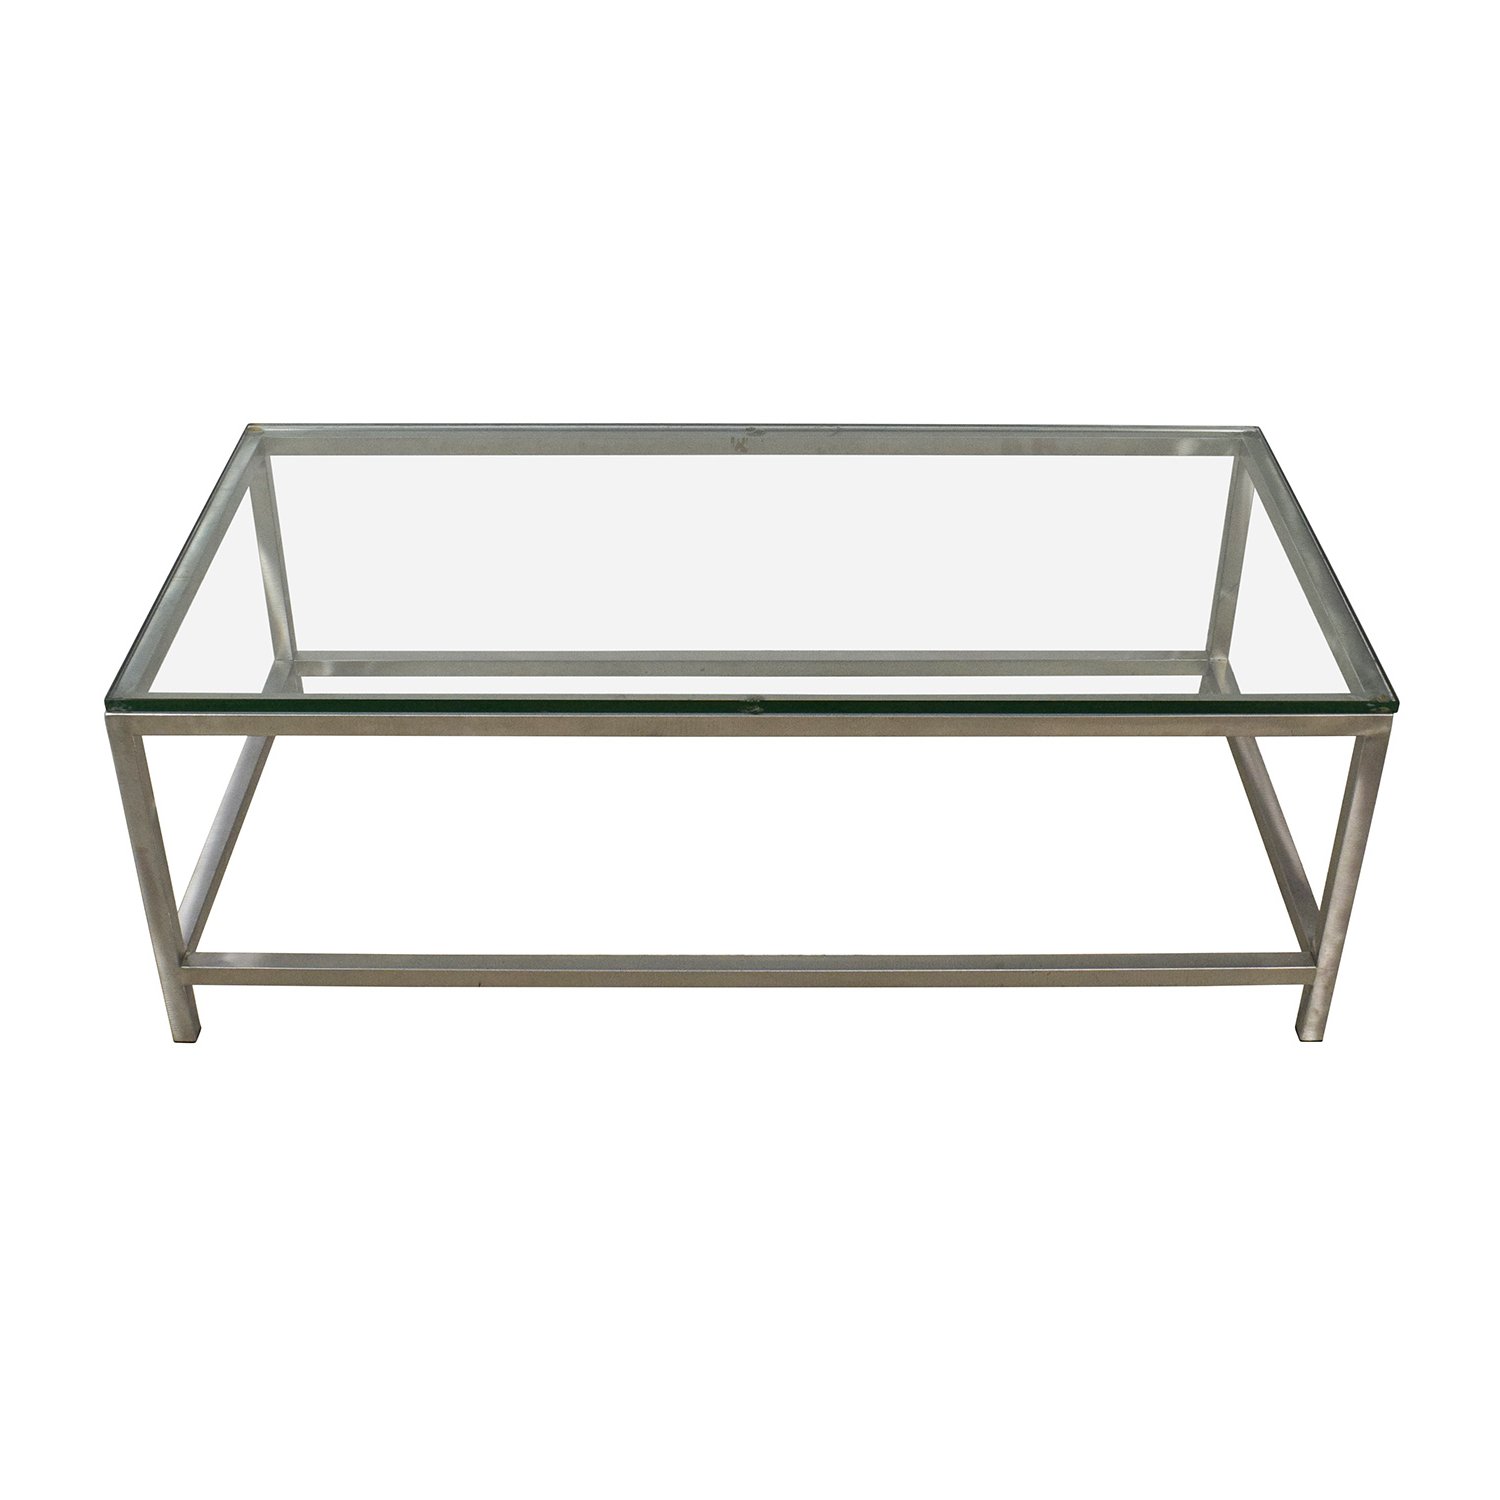 64% Off – Crate And Barrel Crate & Barrel Era Rectangular Glass Top Within Era Glass Console Tables (View 4 of 20)